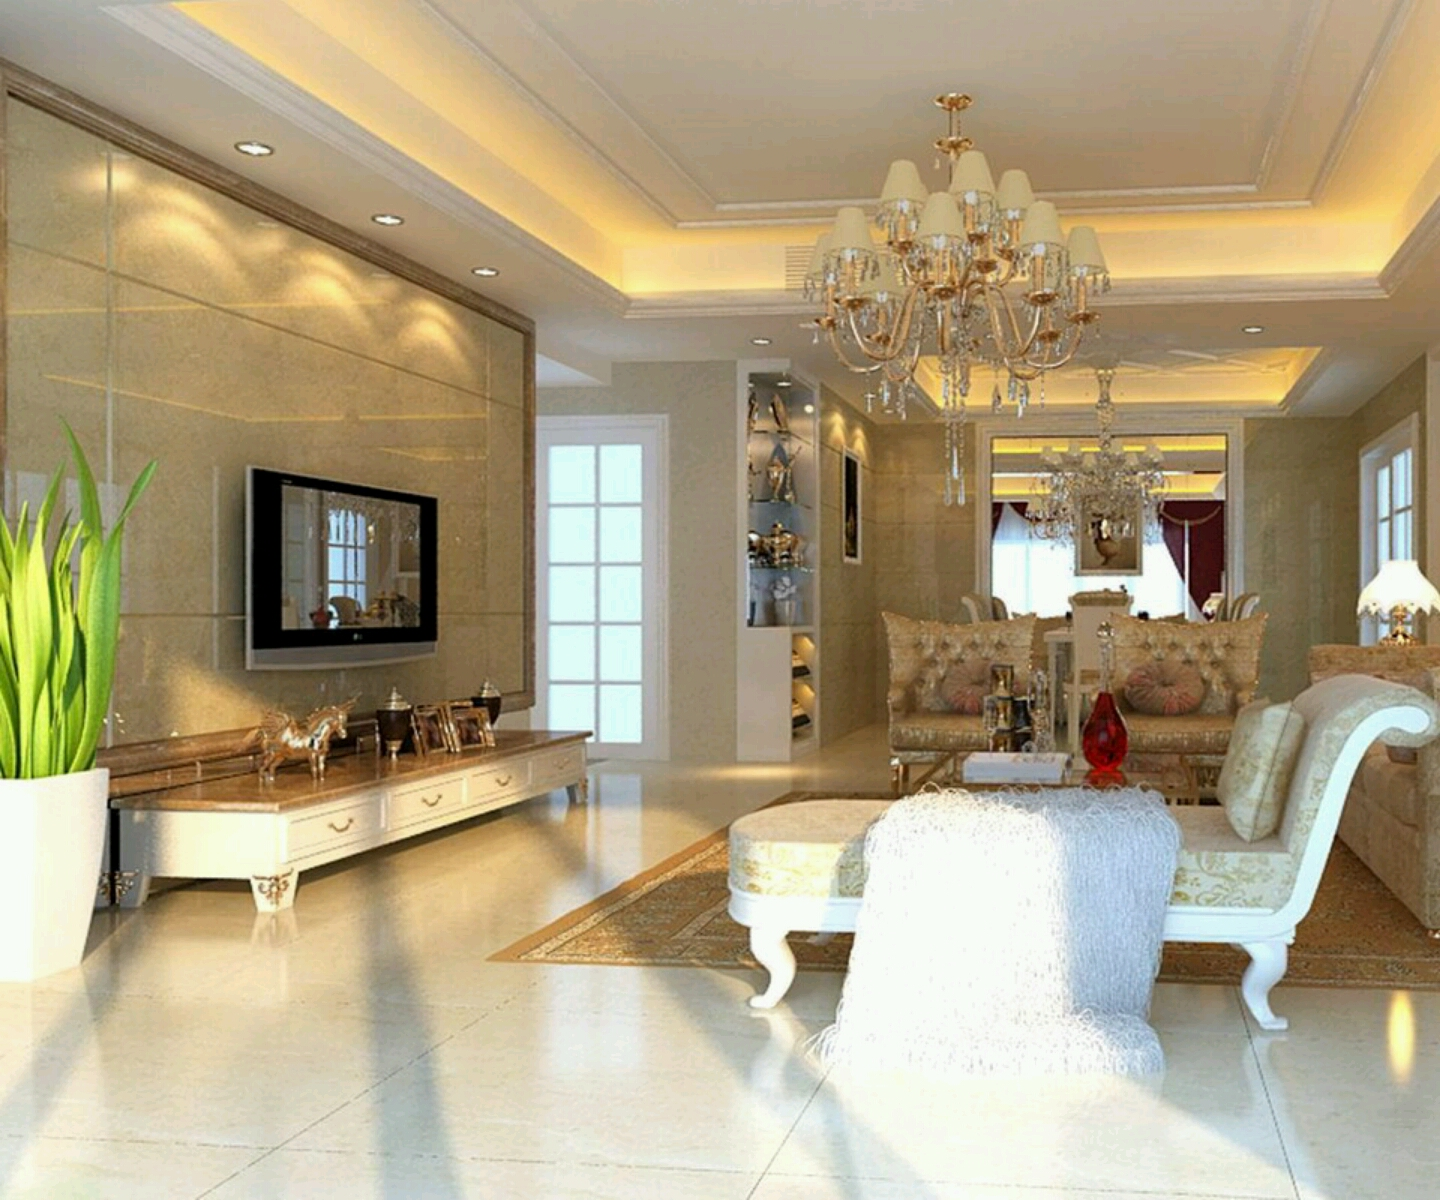 New home designs latest luxury homes interior decoration Living room interior for small house